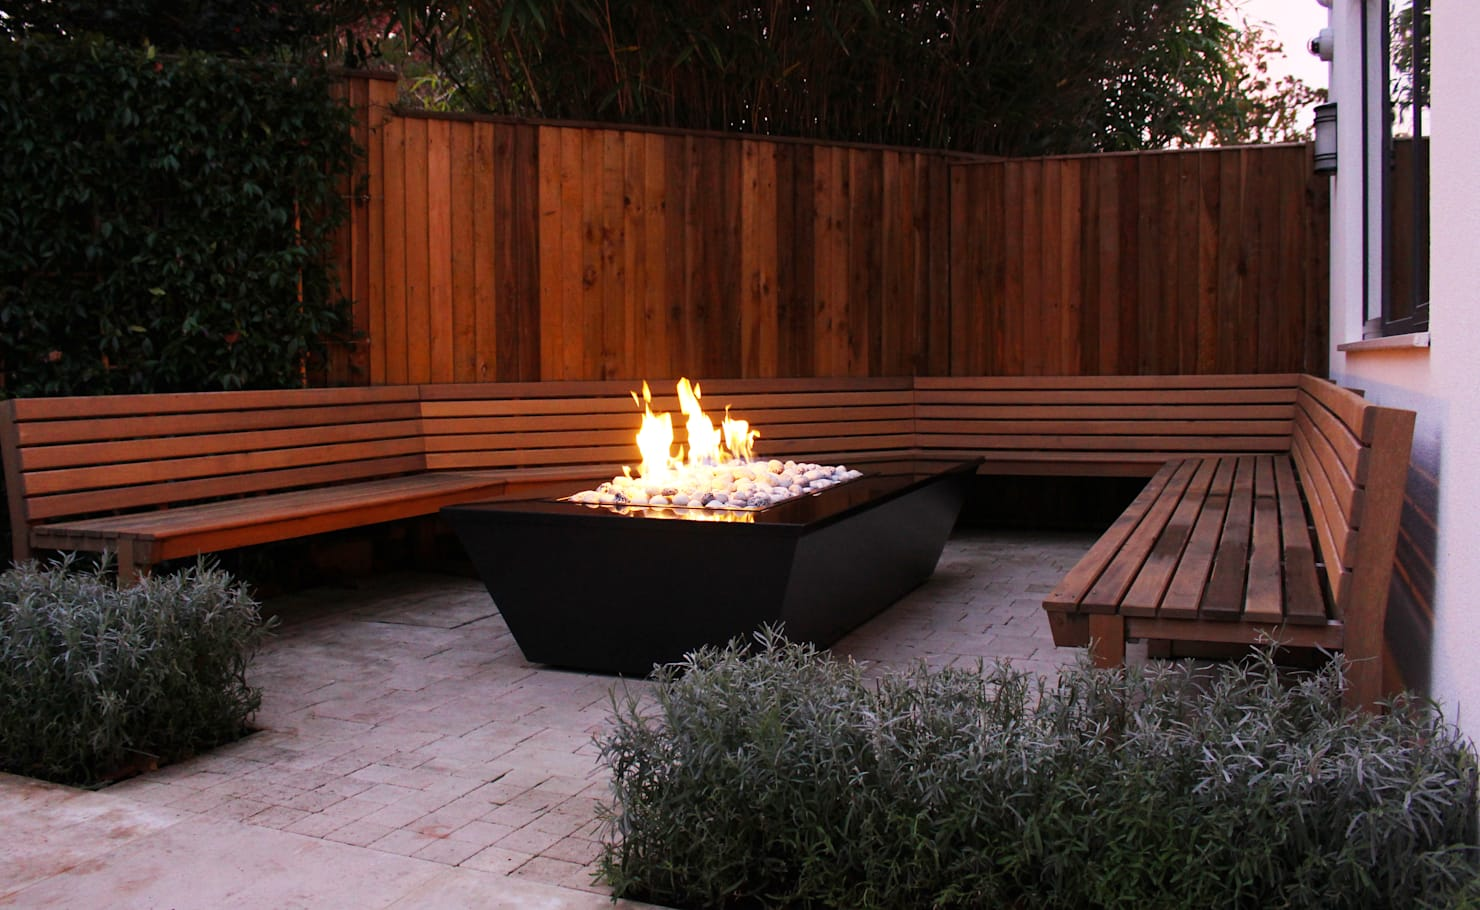 Garden ideas for sociable flavour to outdoor space